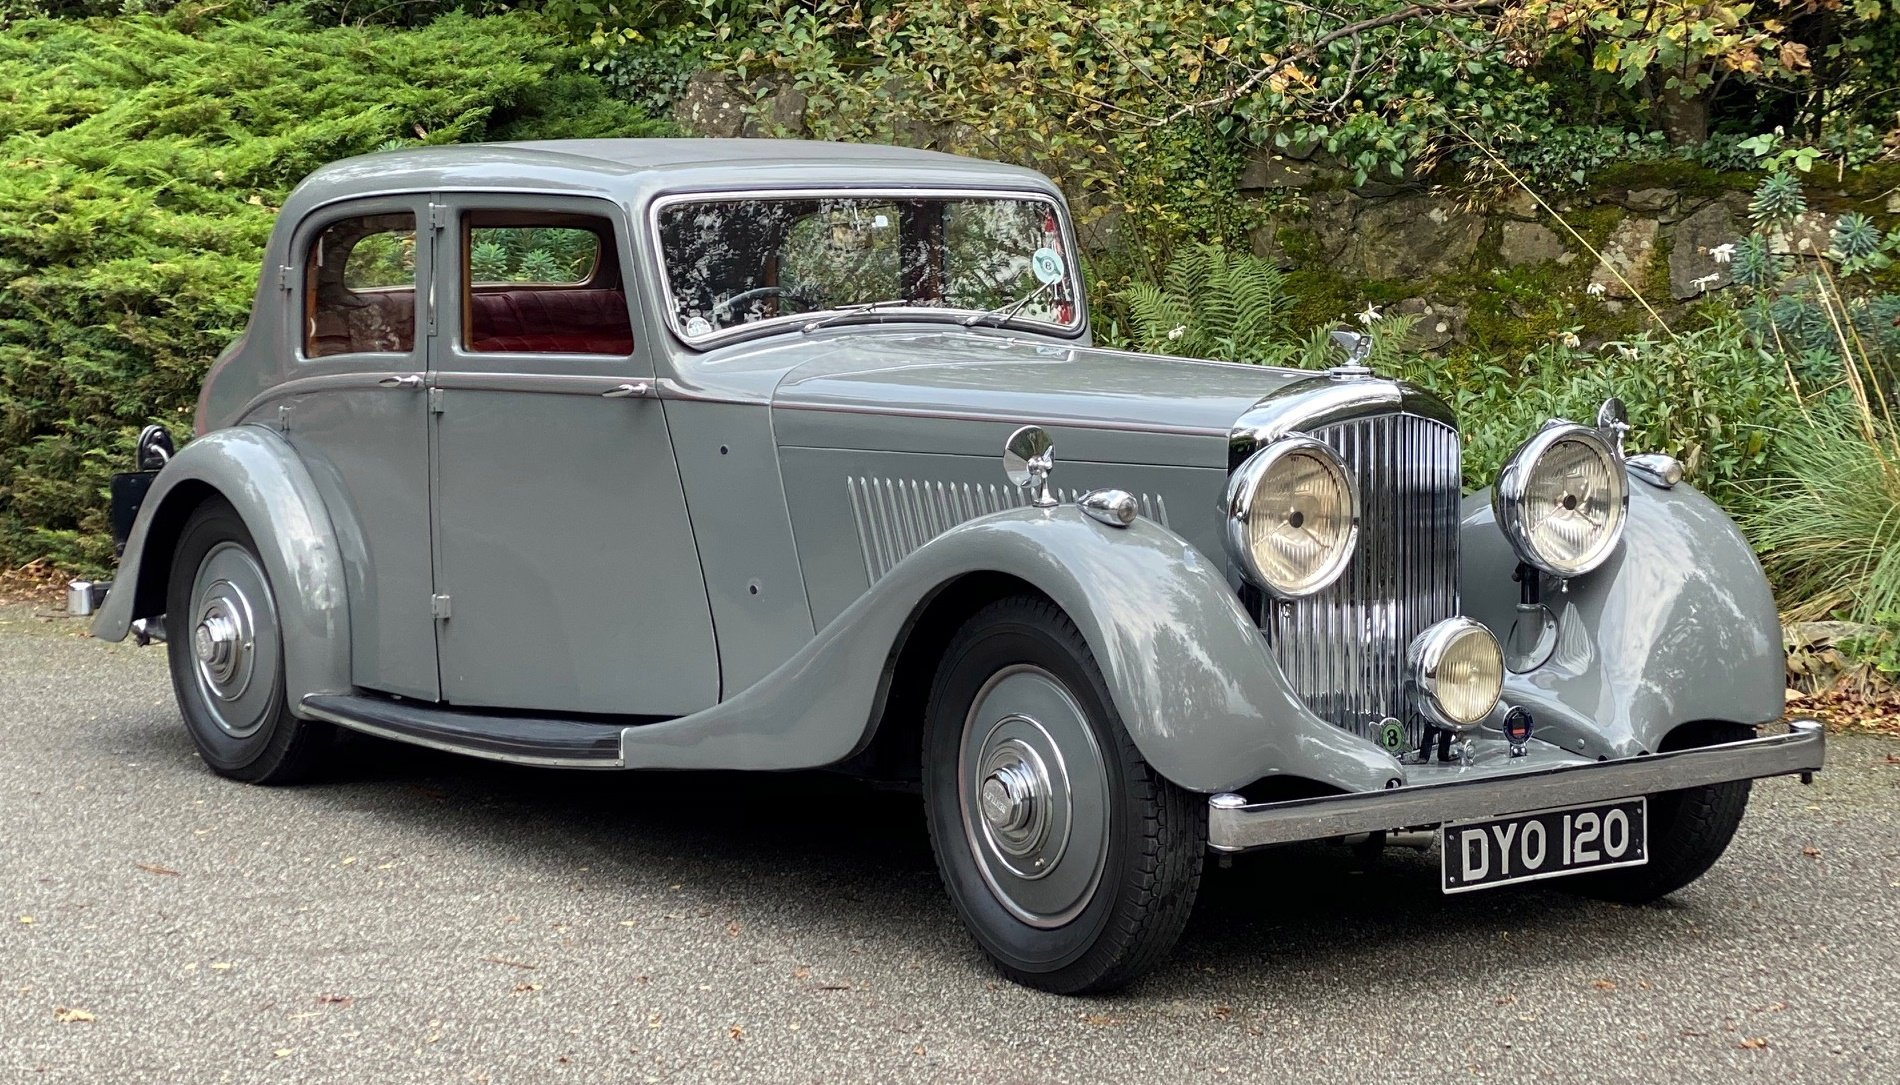 1937 Bentley 4 ¼ Litre Park Ward Sports Saloon B172JD For Sale (picture 1 of 6)